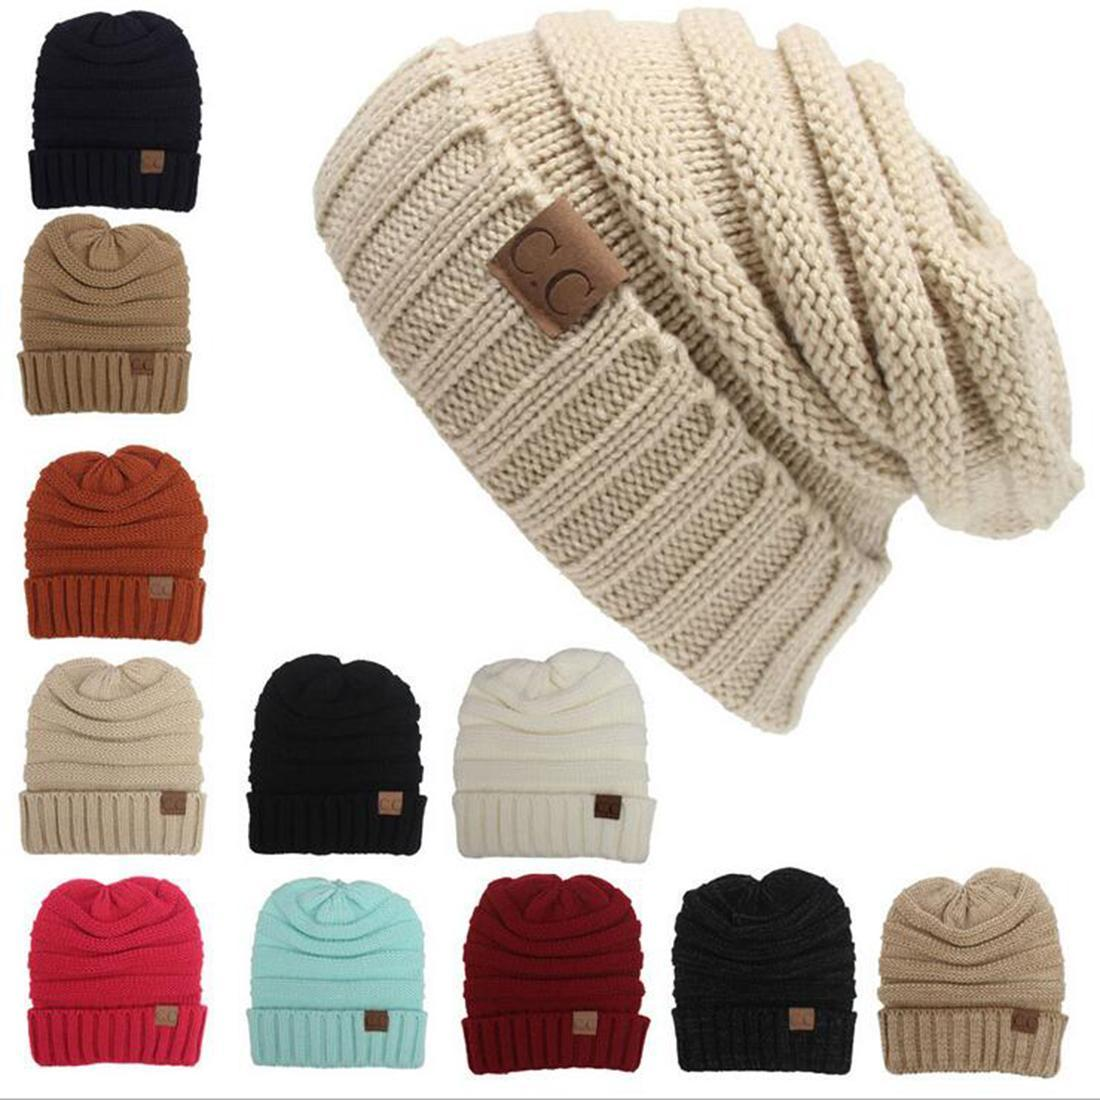 Wholesale-It Takes Women s C.C Beanies Letter Printed Hats for Women  Knitted Berets 2016 Stylish Hats with Ear Lady Accessories C.C Beanies  Letter Printe ... f53cc29612b